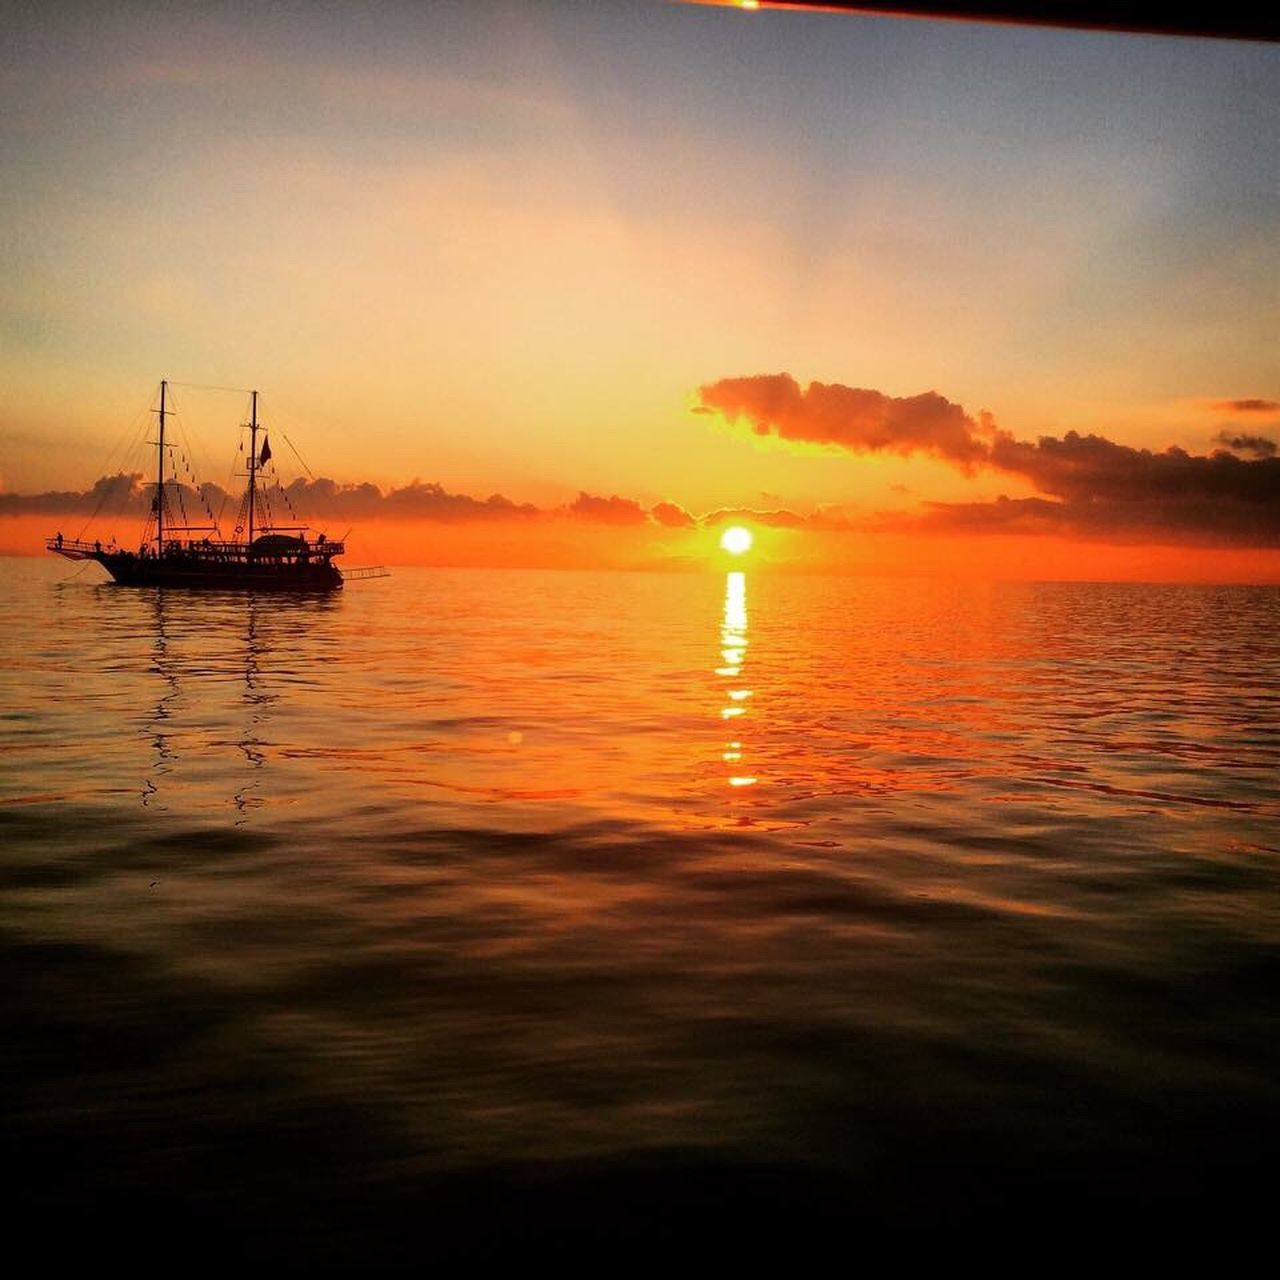 sunset, water, sea, nature, beauty in nature, scenics, tranquility, orange color, sky, nautical vessel, waterfront, outdoors, tranquil scene, silhouette, reflection, no people, transportation, mast, horizon over water, day